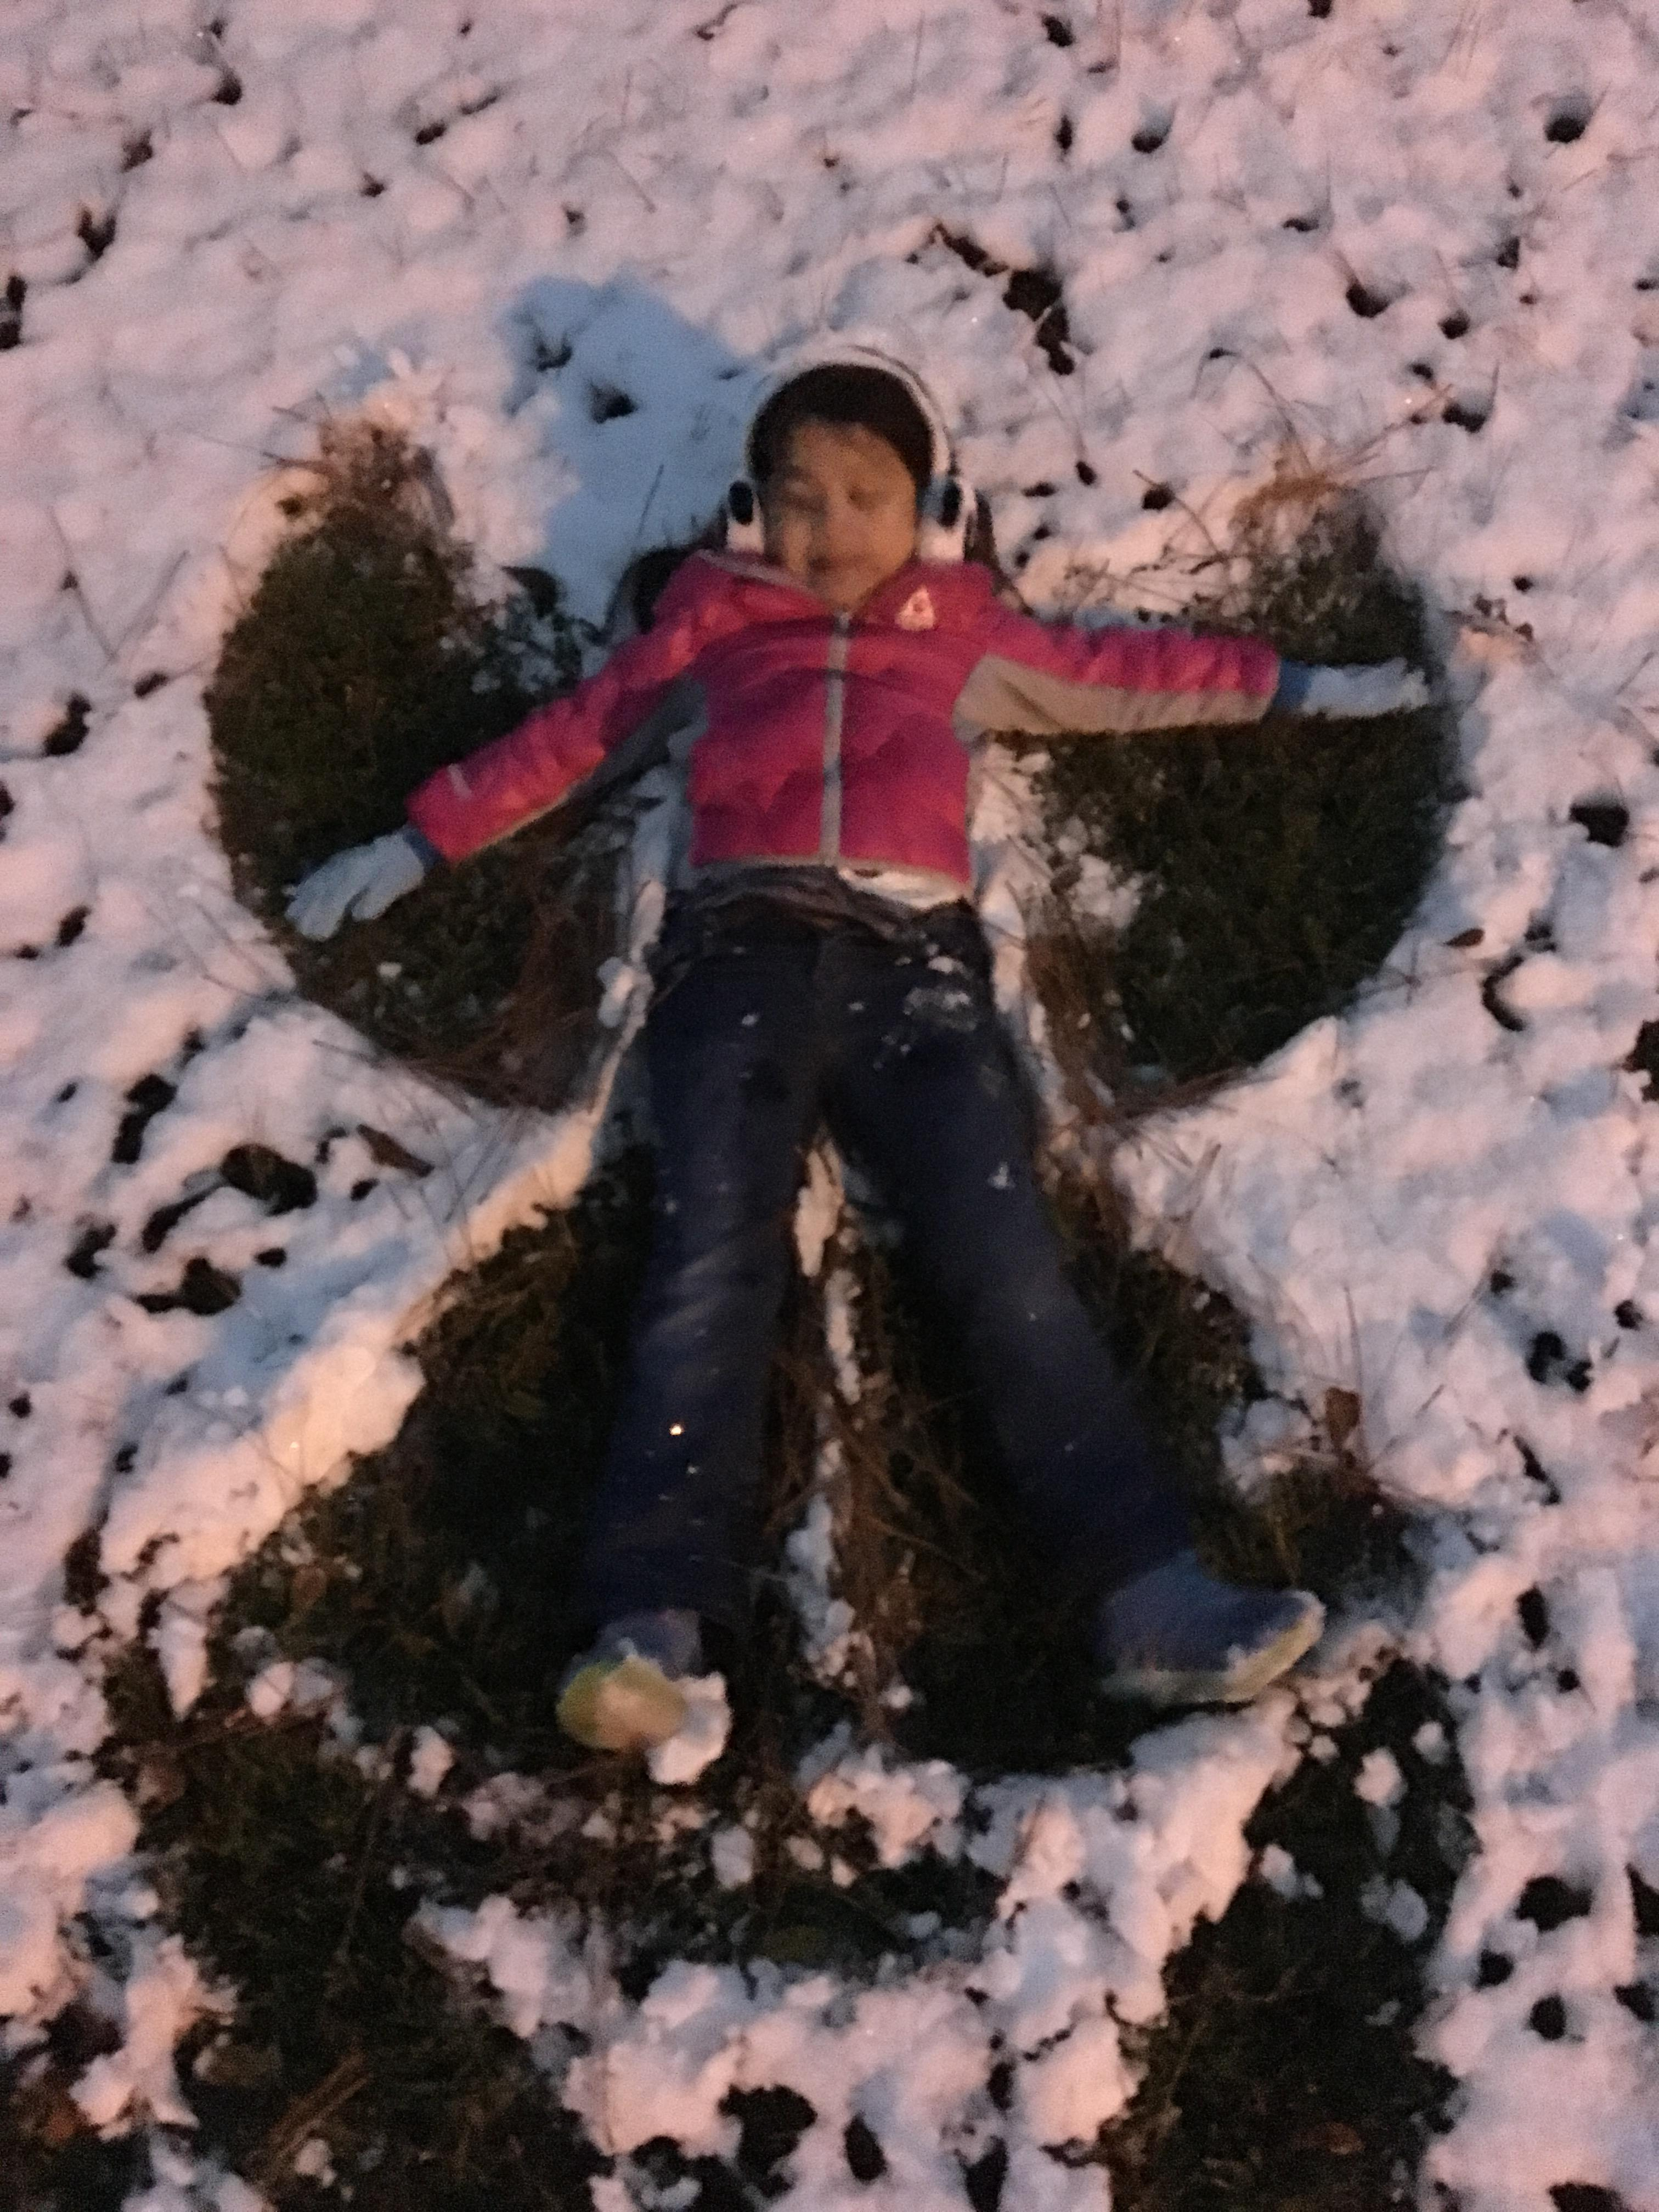 <div class='meta'><div class='origin-logo' data-origin='none'></div><span class='caption-text' data-credit=''>Amber's first snow angel, in Cypress near Danish Elementary</span></div>